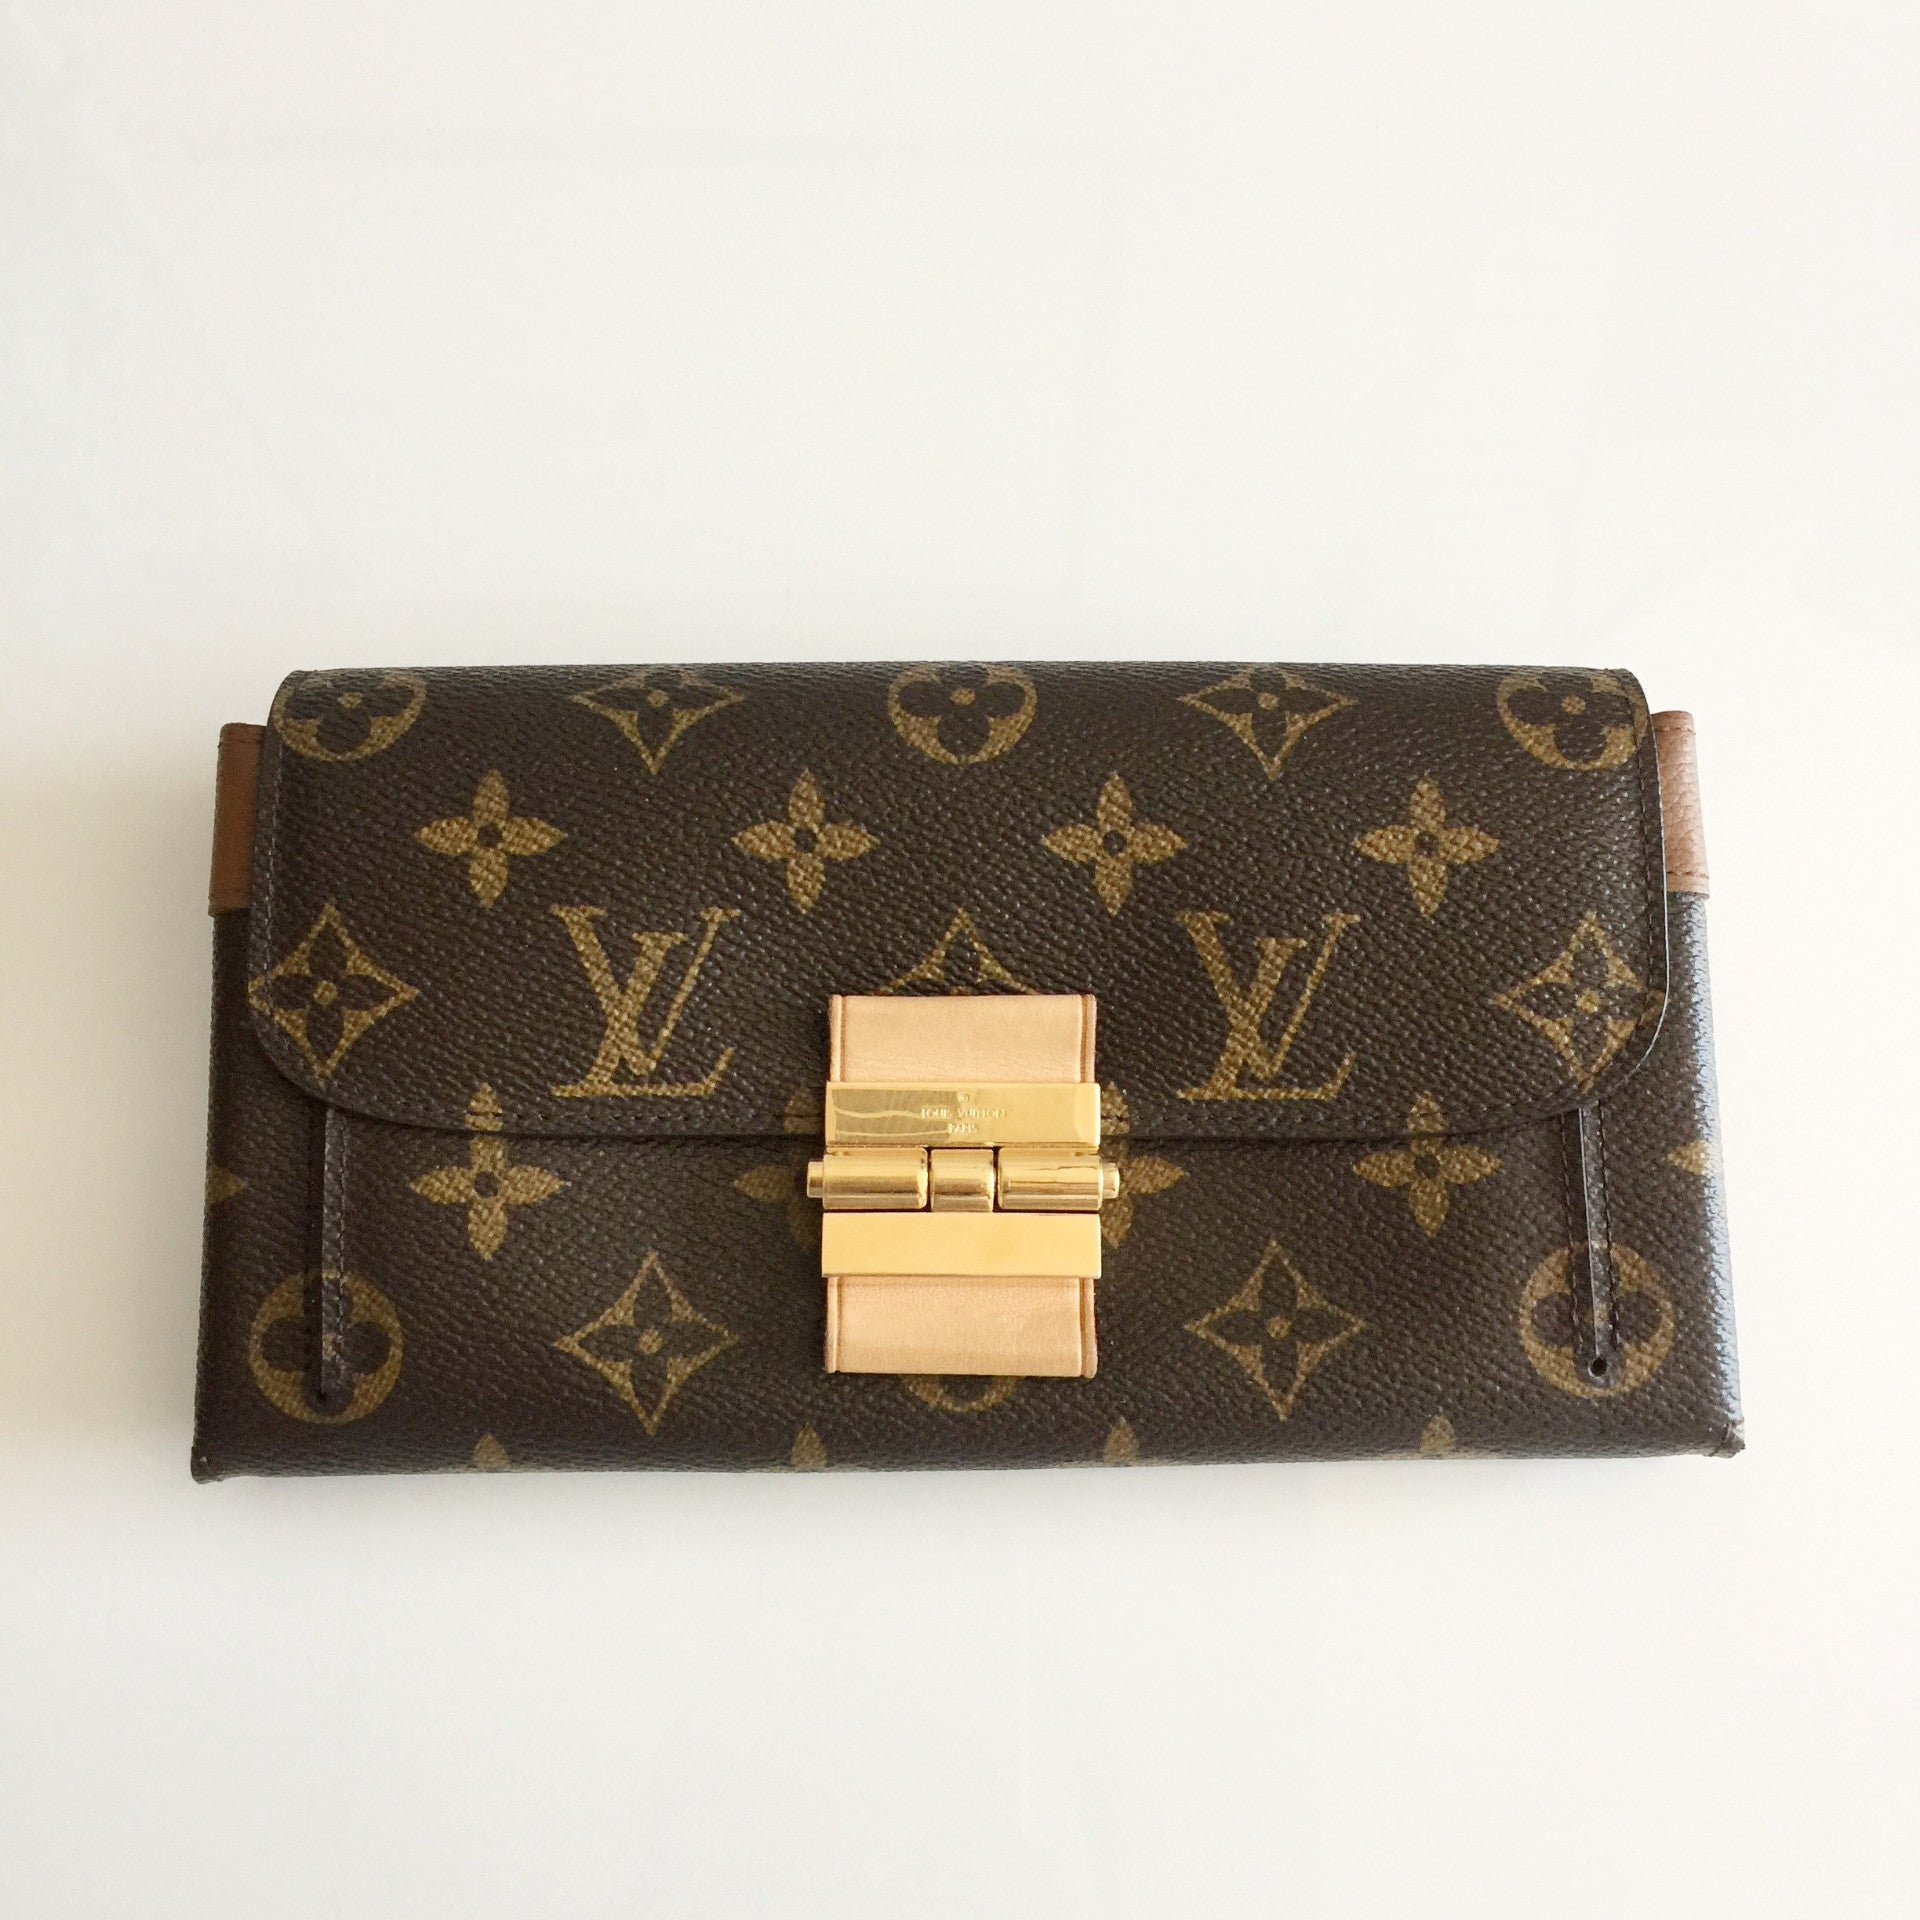 Authentic LOUIS VUITTON Monogram Elysee Wallet Havane